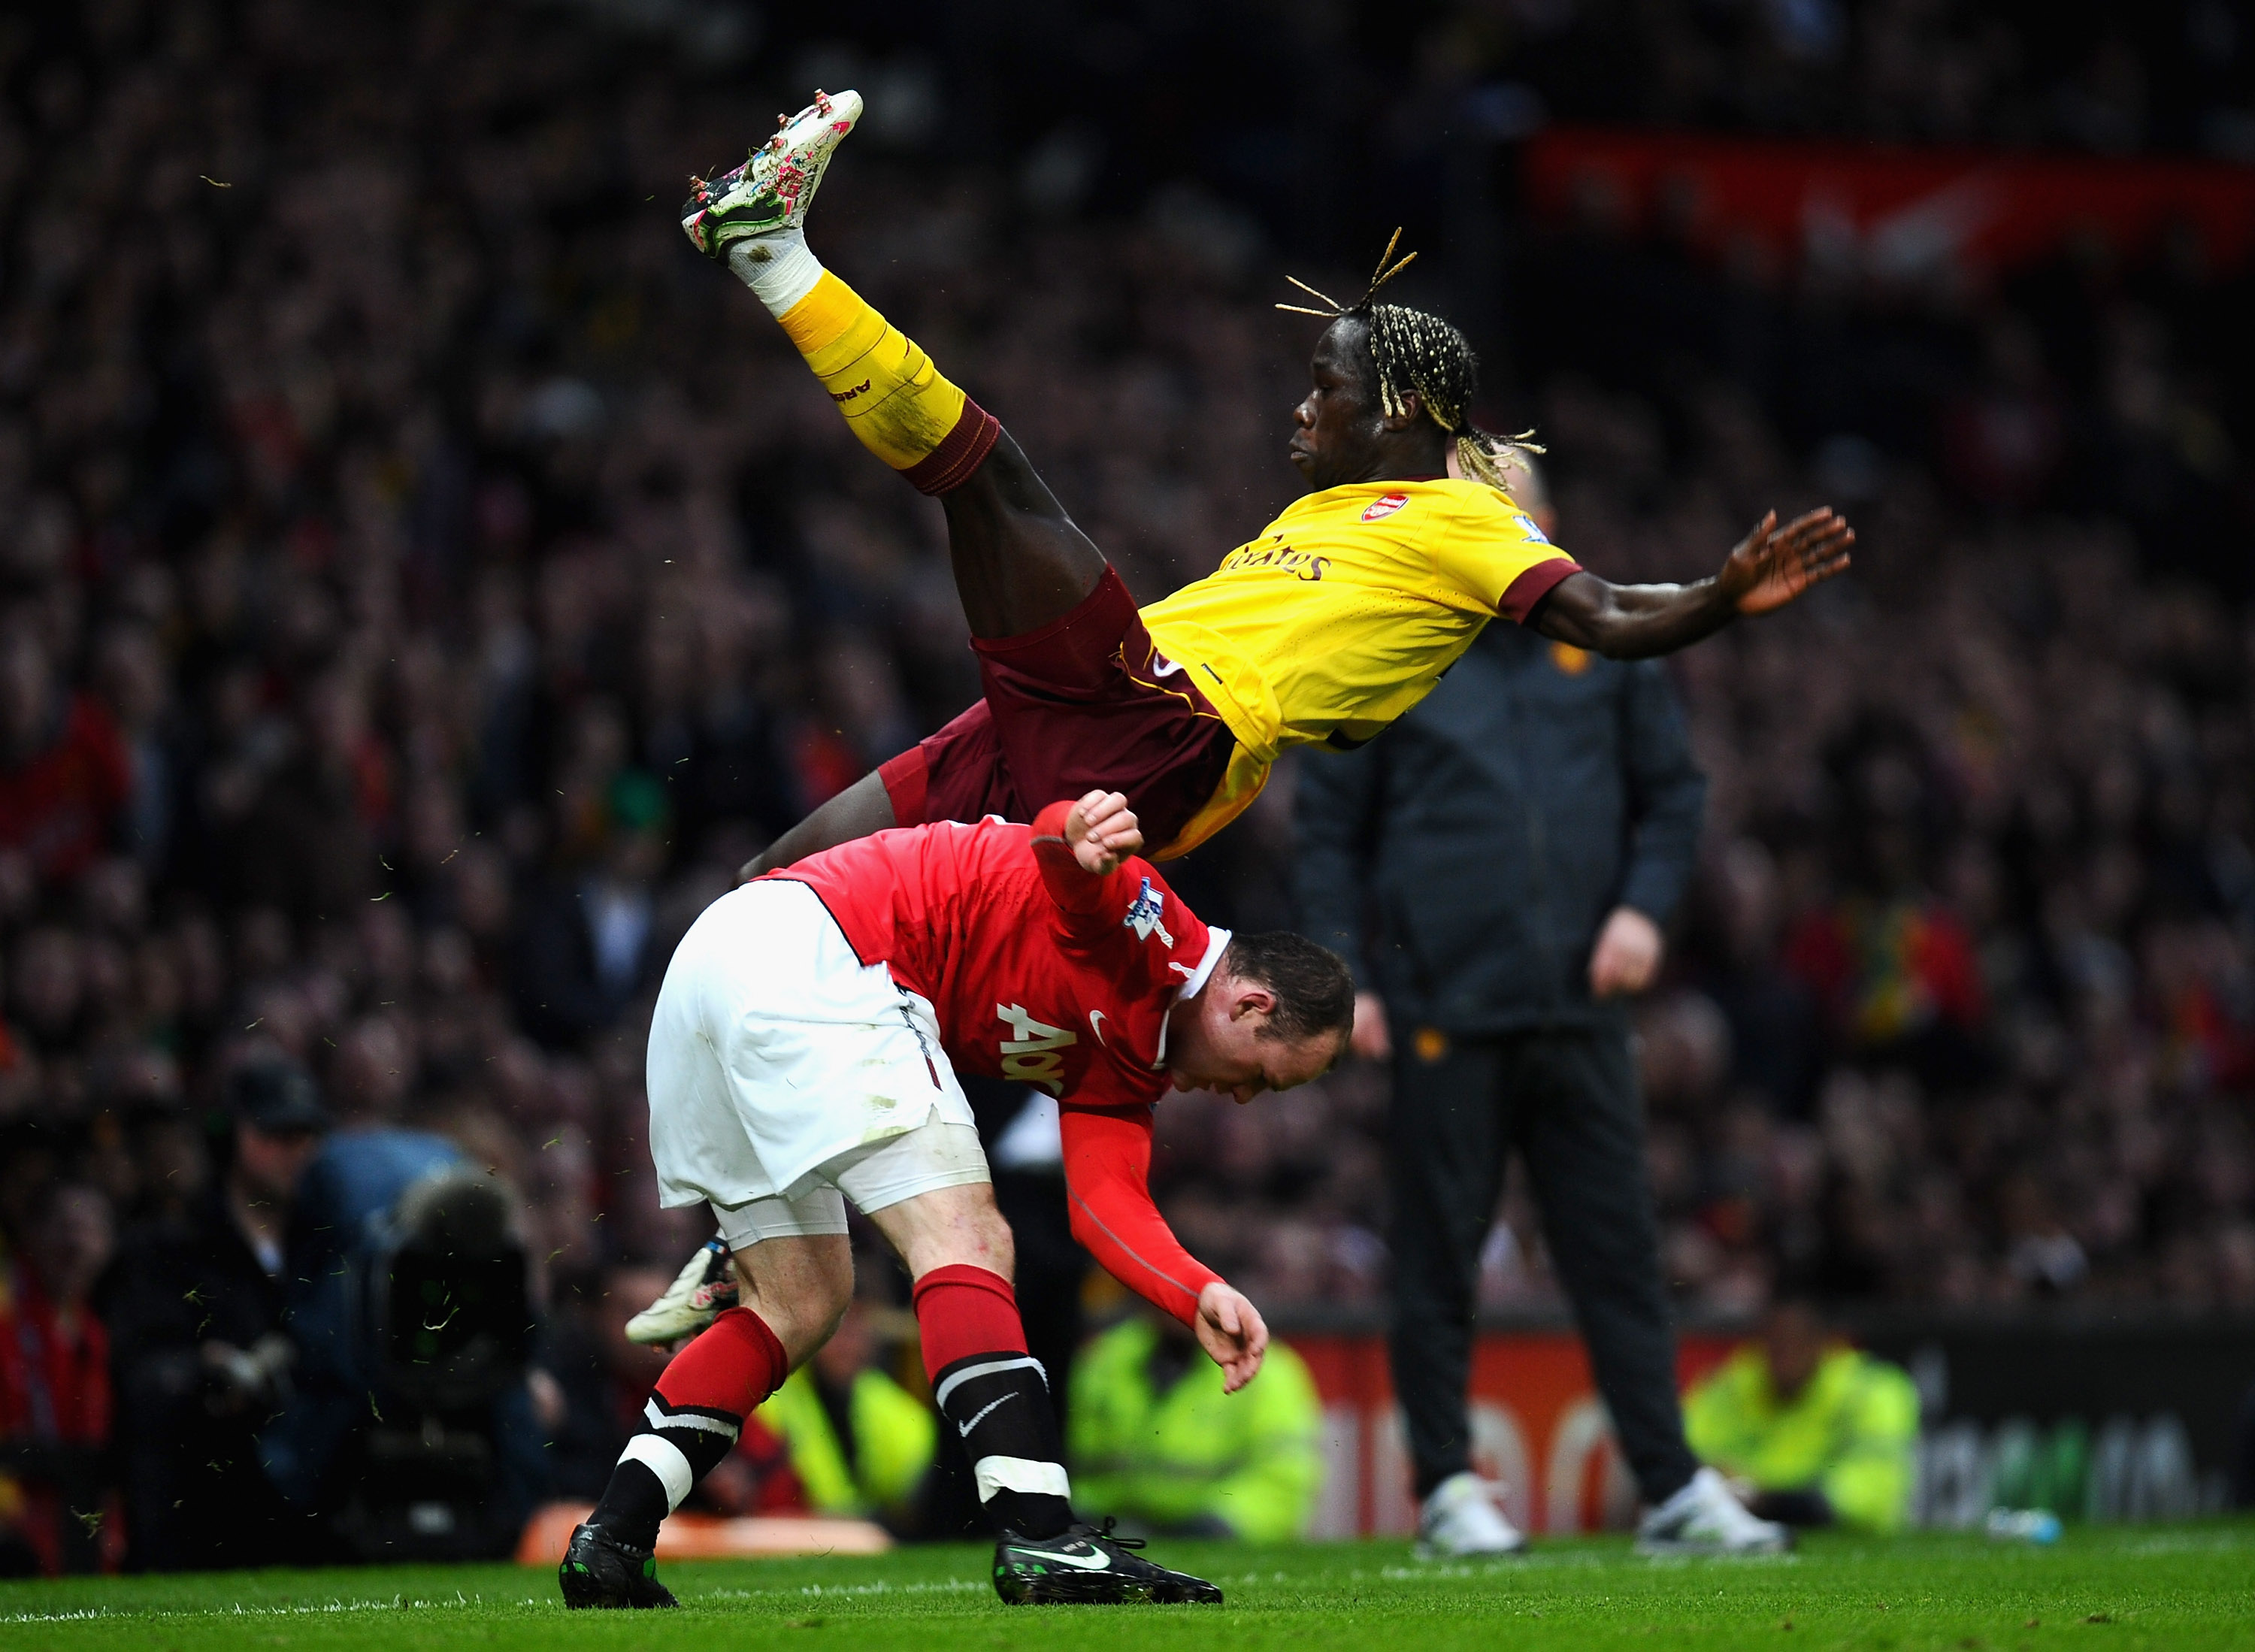 MANCHESTER, ENGLAND - MARCH 12:  Bacary Sagna of Arsenal falls over Wayne Rooney of Manchester United during the FA Cup sponsored by E.On Sixth Round match between Manchester United and Arsenal at Old Trafford on March 12, 2011 in Manchester, England.  (P